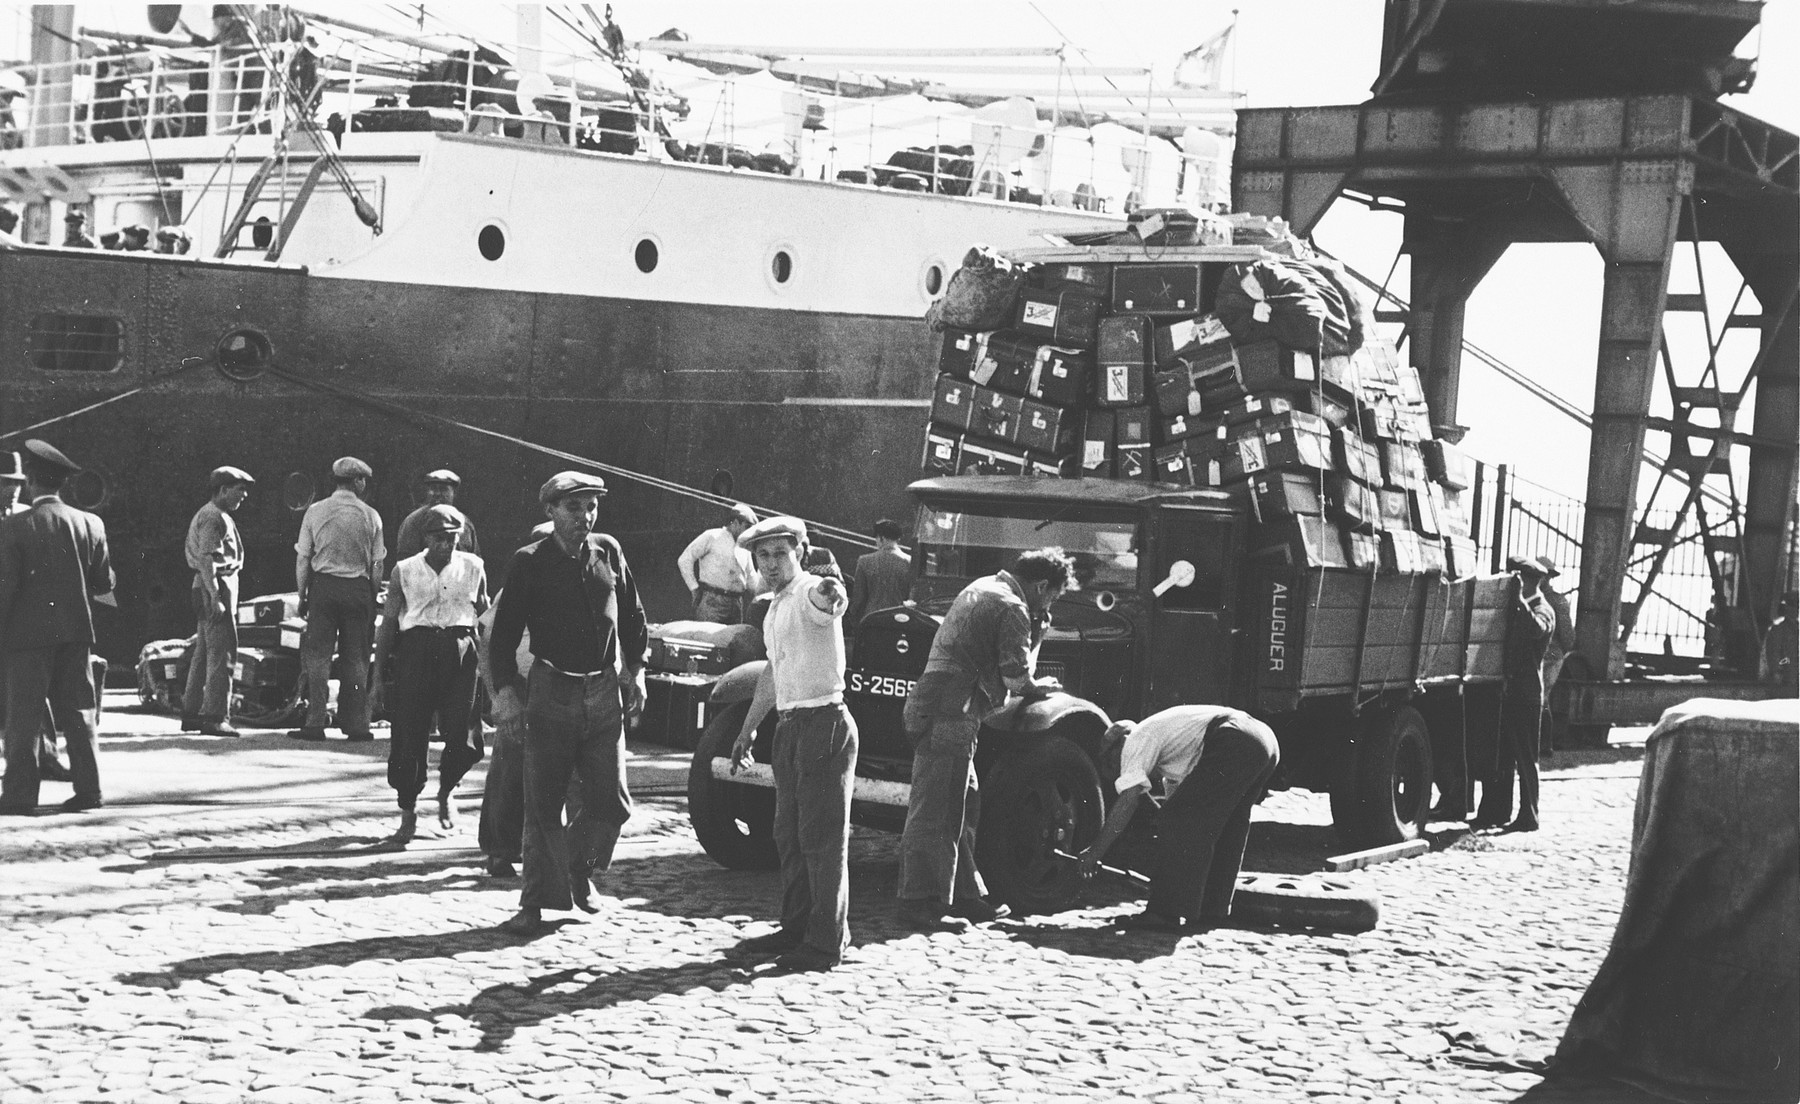 Portuguese dockworkers in the port of Lisbon prepare to transfer the luggage of Jewish refugees from a truck to the SS Mouzinho.